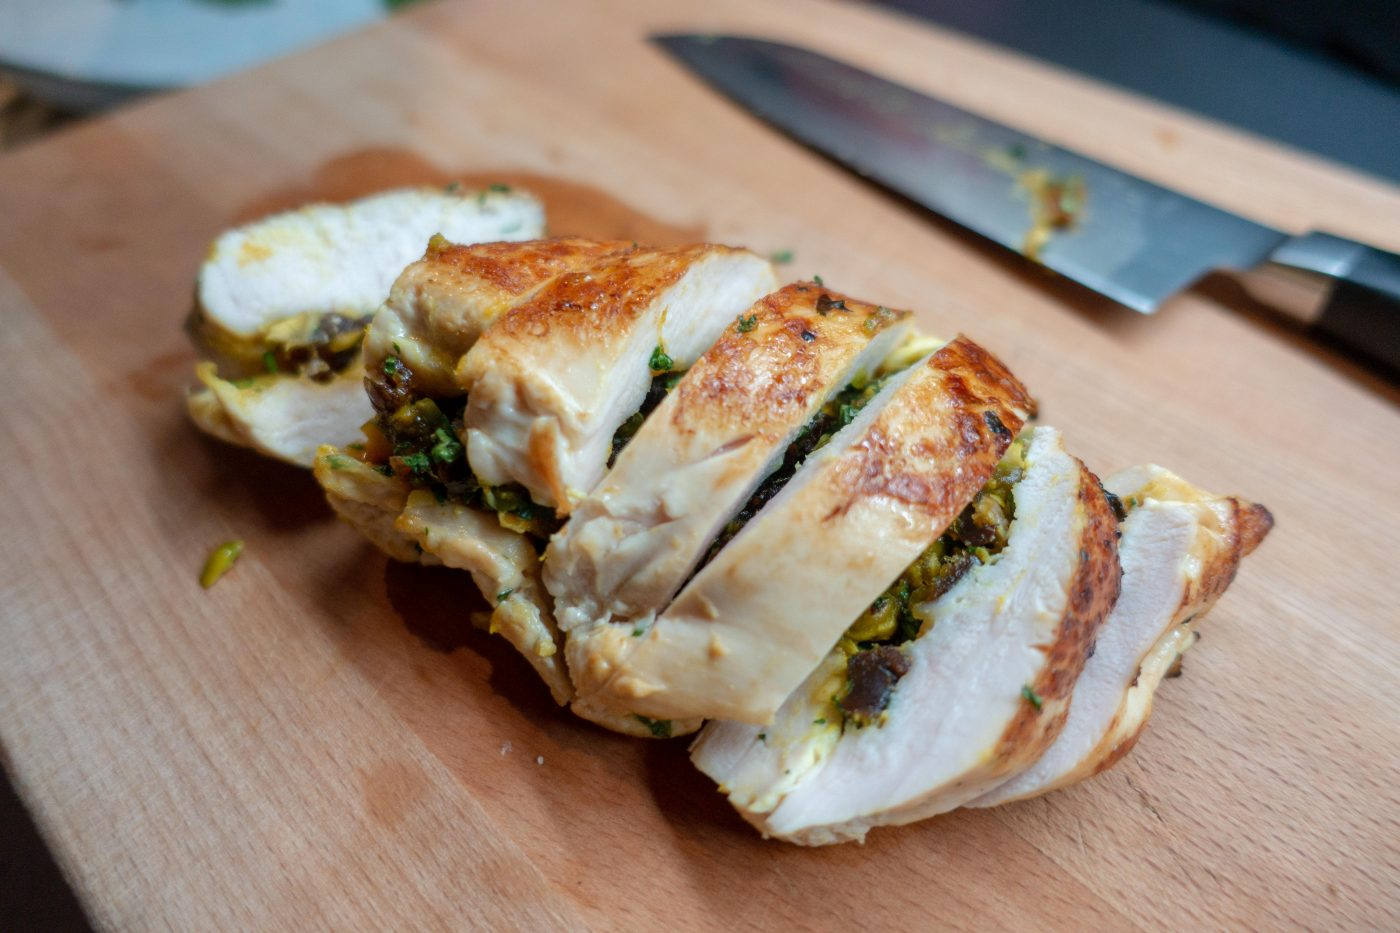 Chicken breast stuffed with dates and pistachios